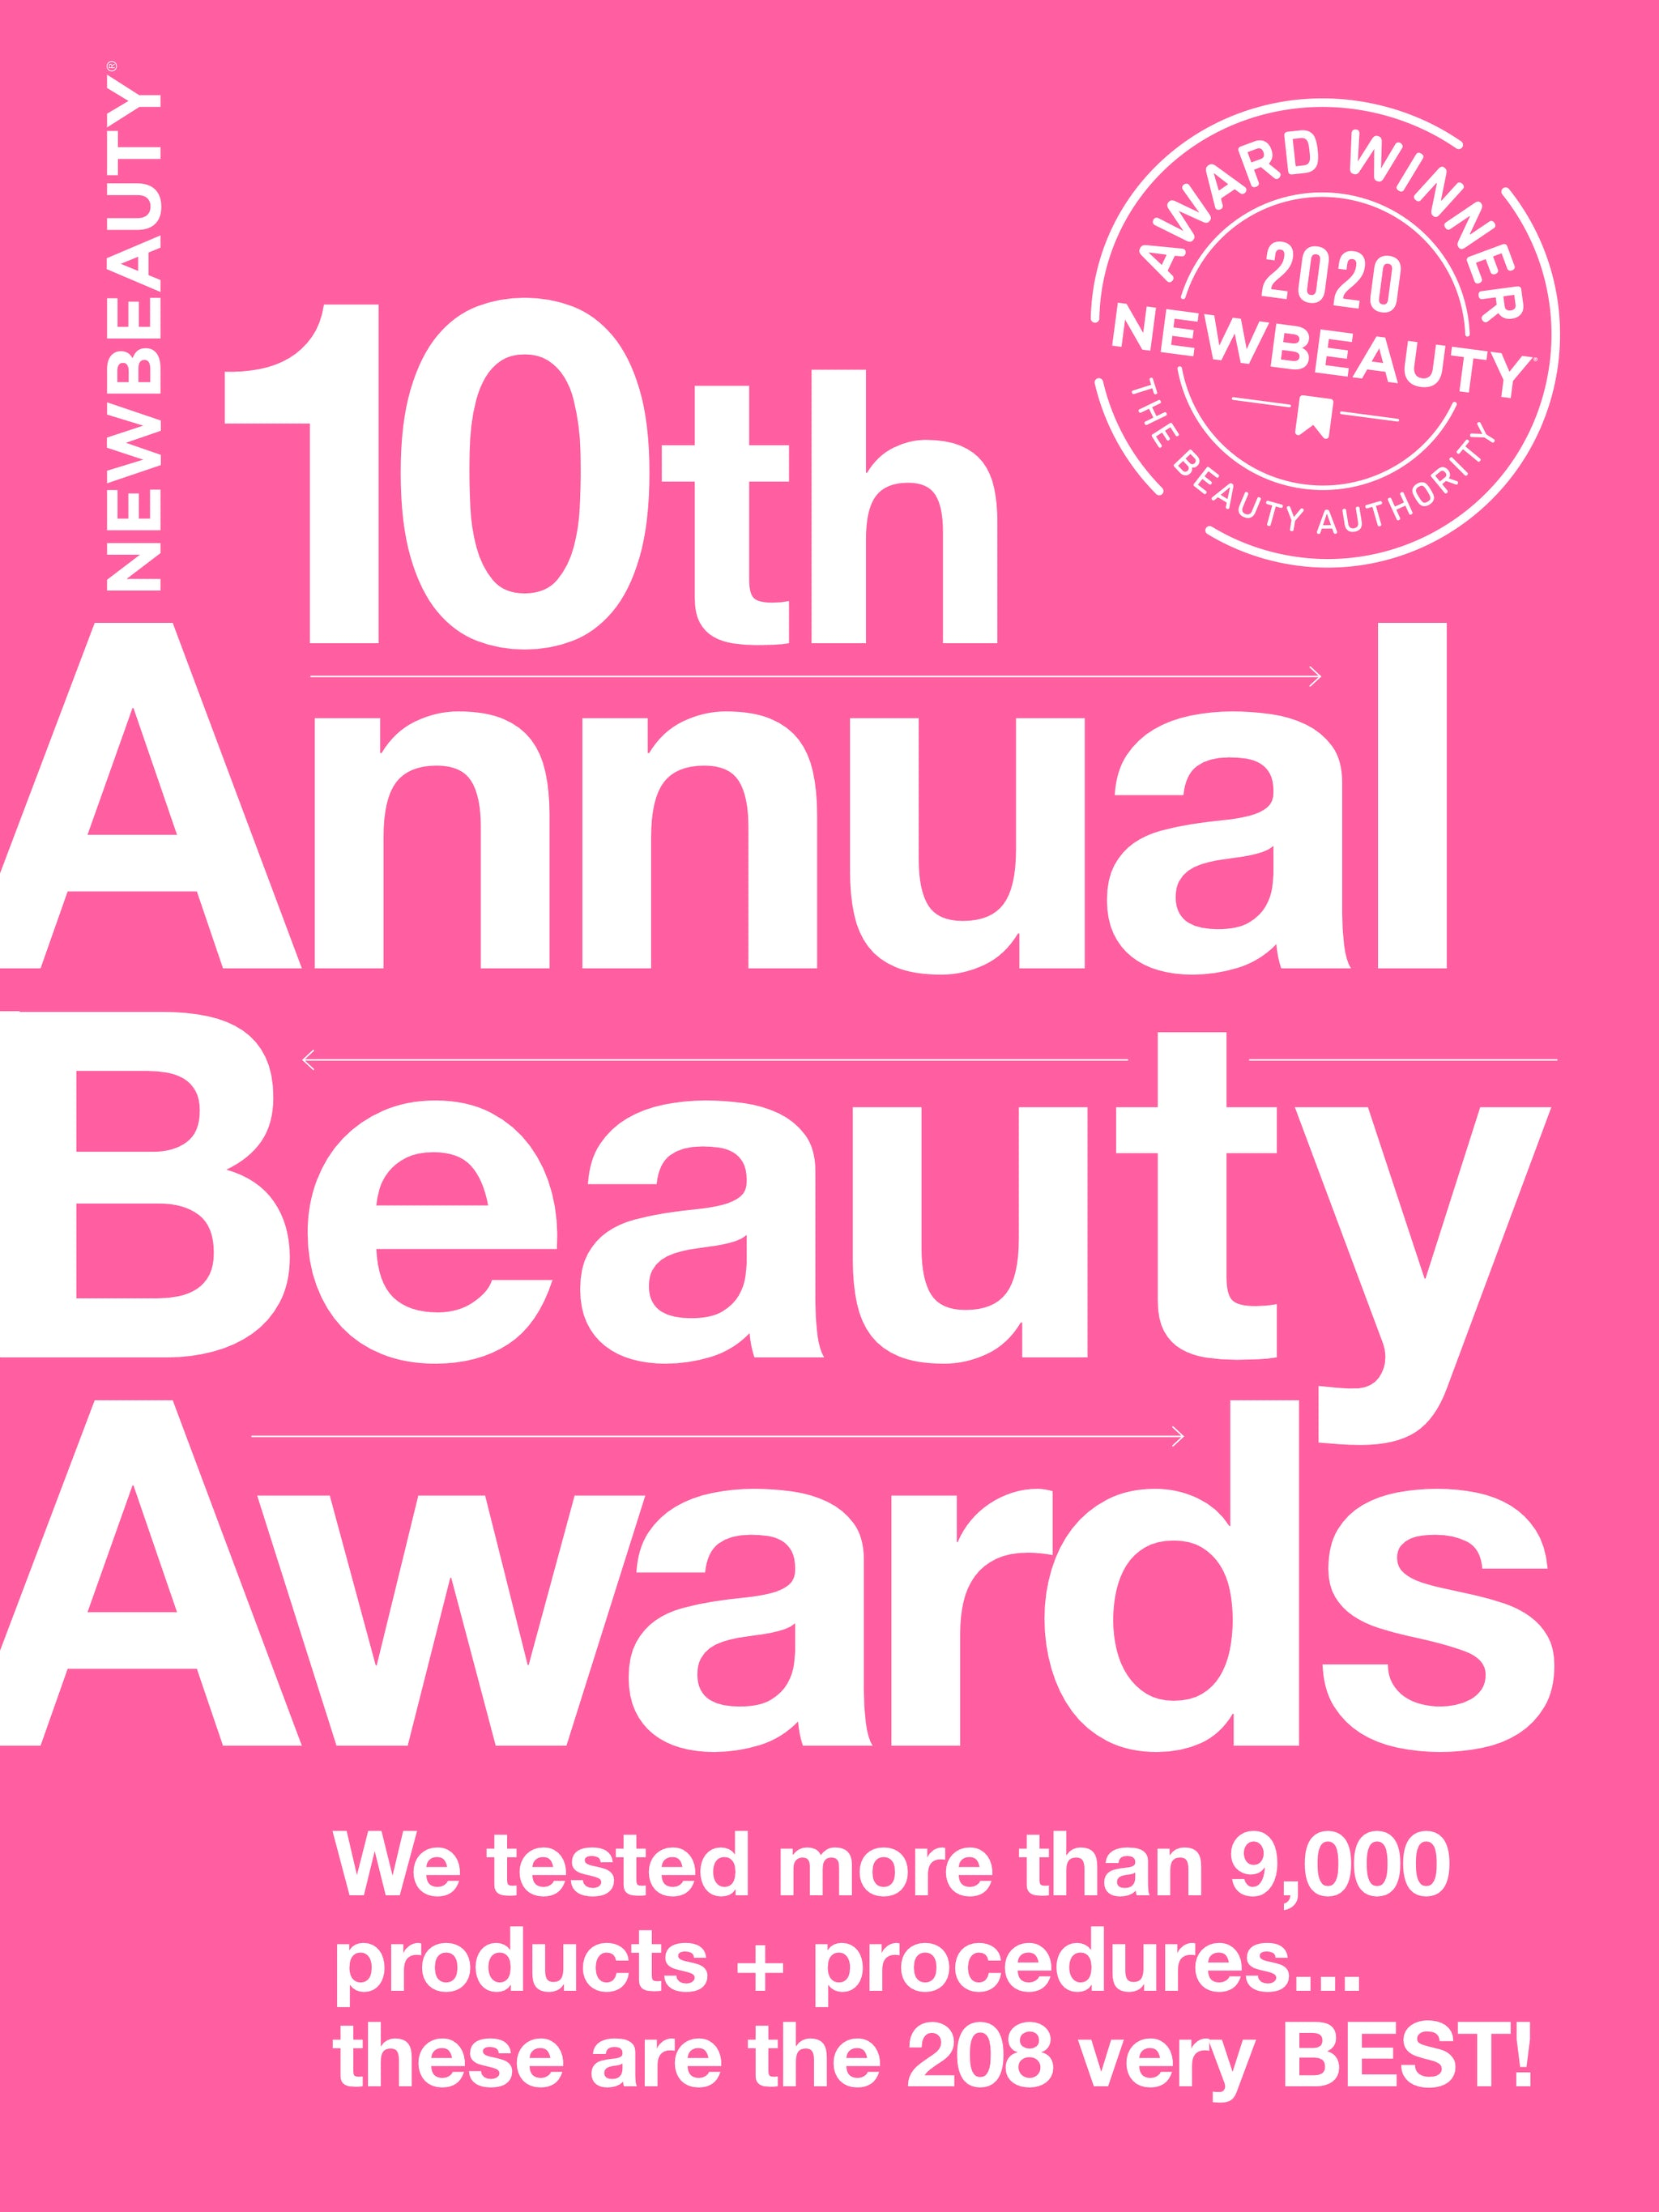 April 2020 - NewBeauty Beauty Awards: Macrene Actives Won the Best Moisturizer and Clean Beauty Badge!